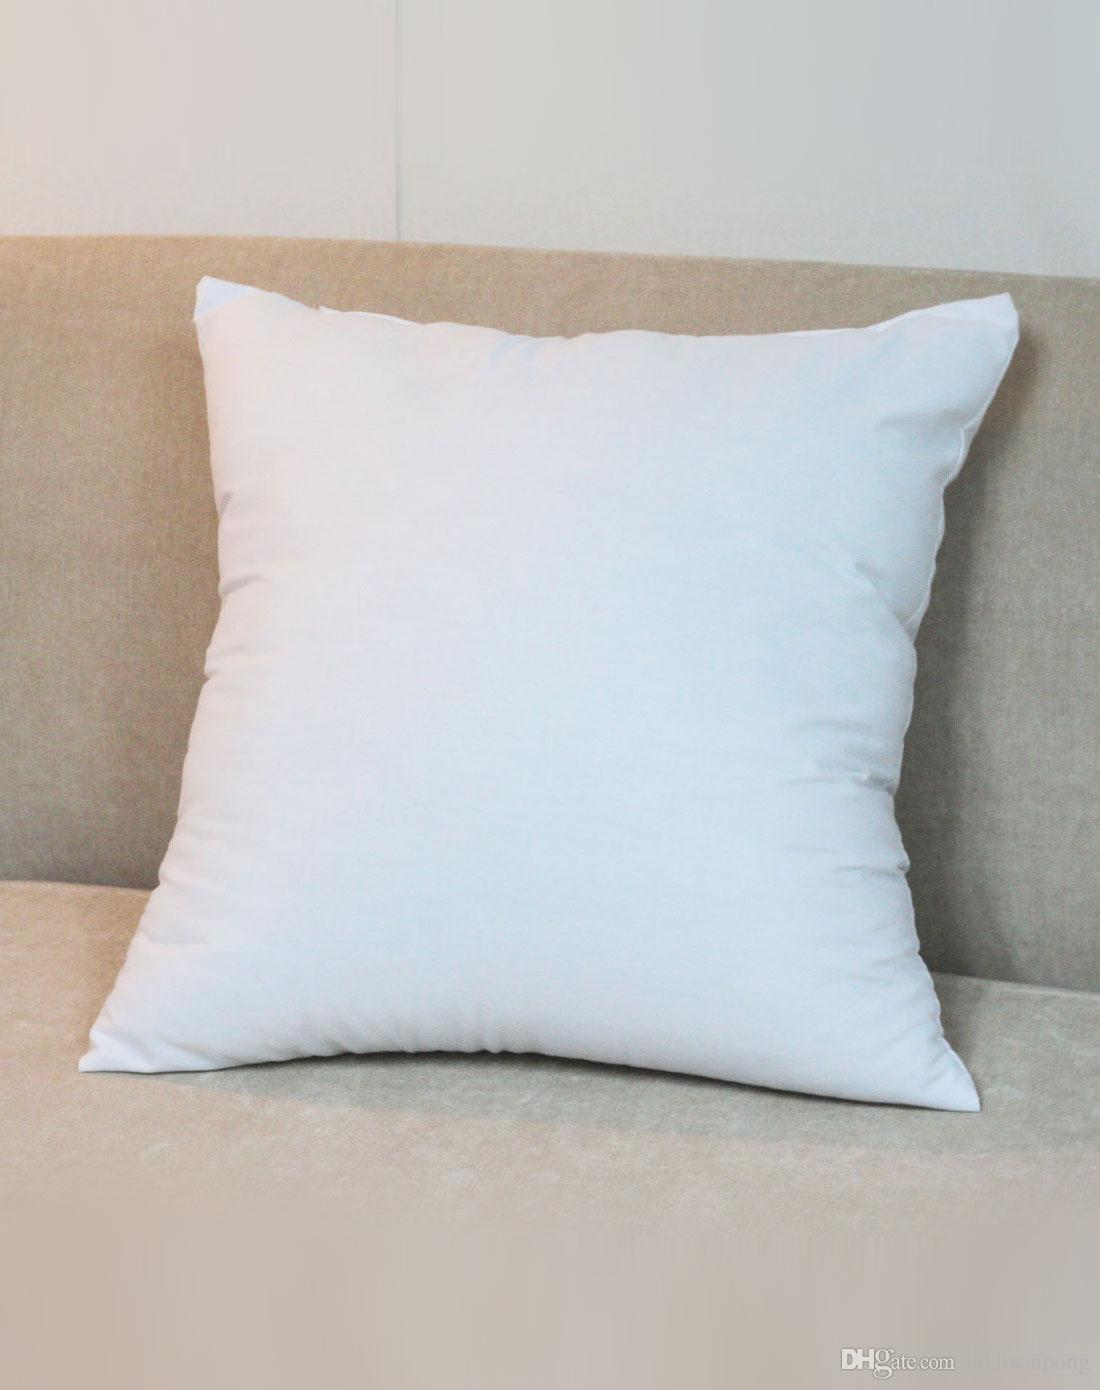 Plain White Color 250gsm Cotton Canvas Cushion Cover With Hidden Zip For Custom/Diy Print Blank ...